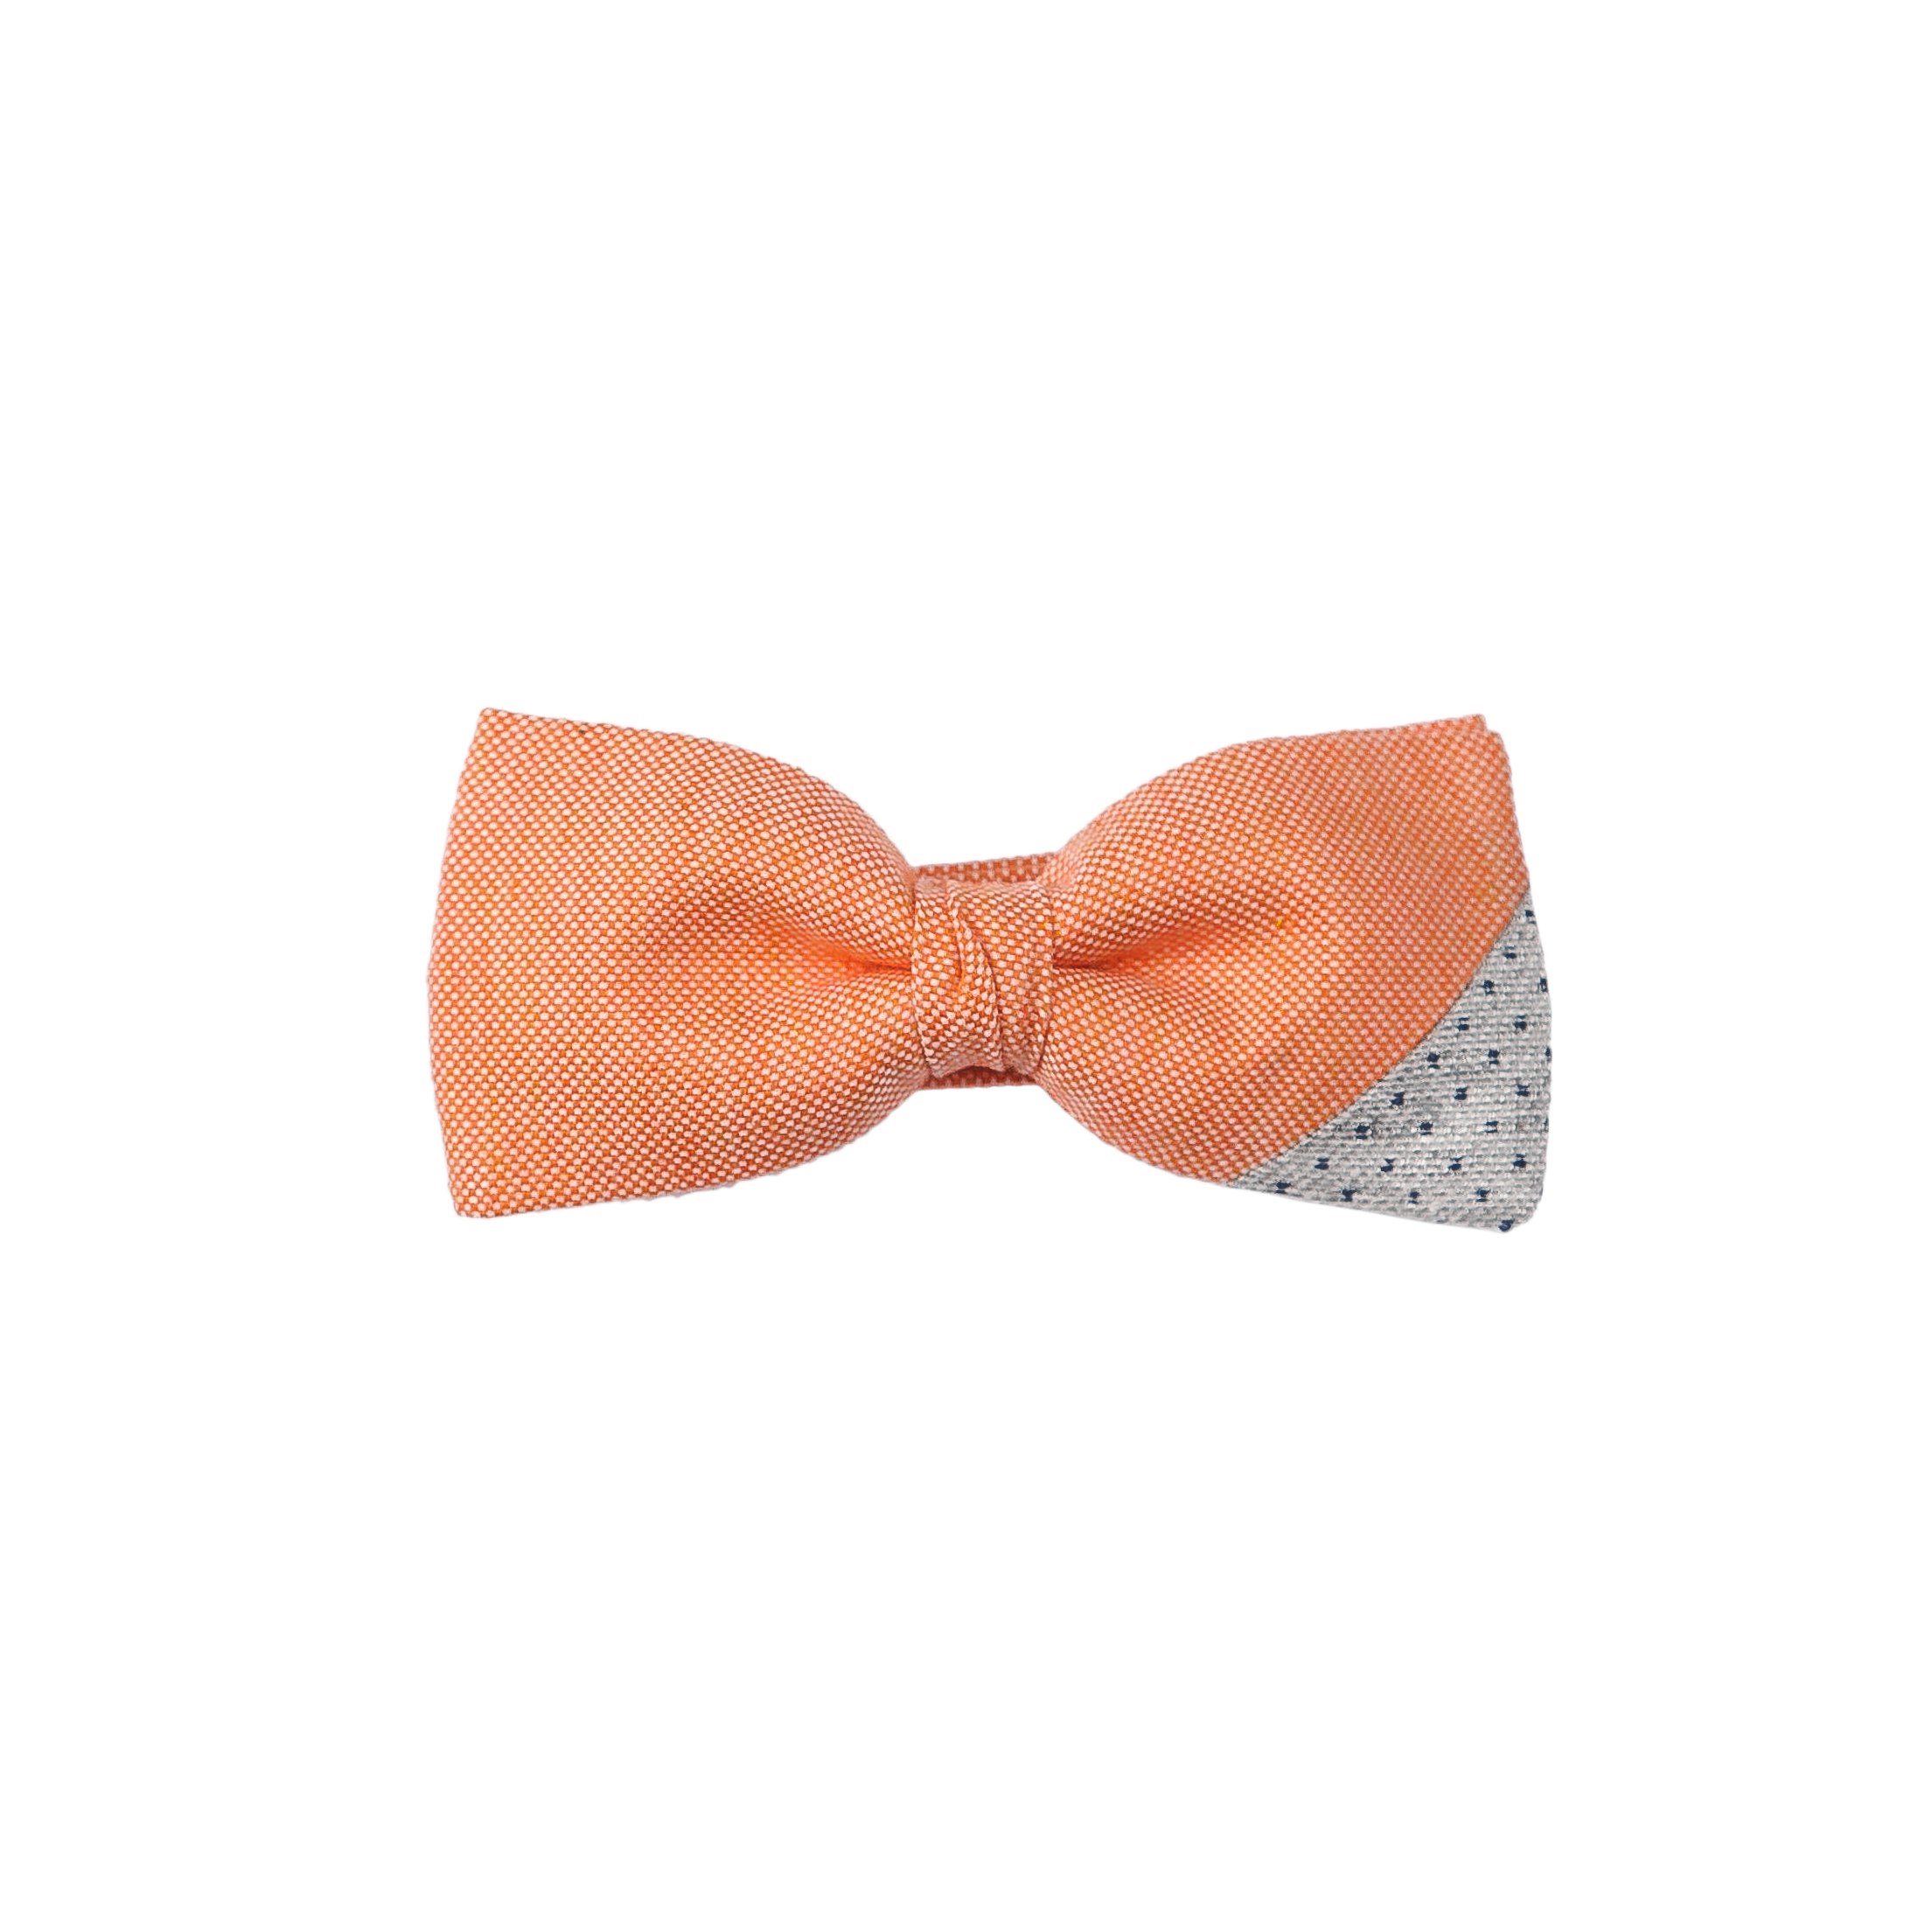 Two-piece bowtie combining a light orange silk with a dotted gray fabric.